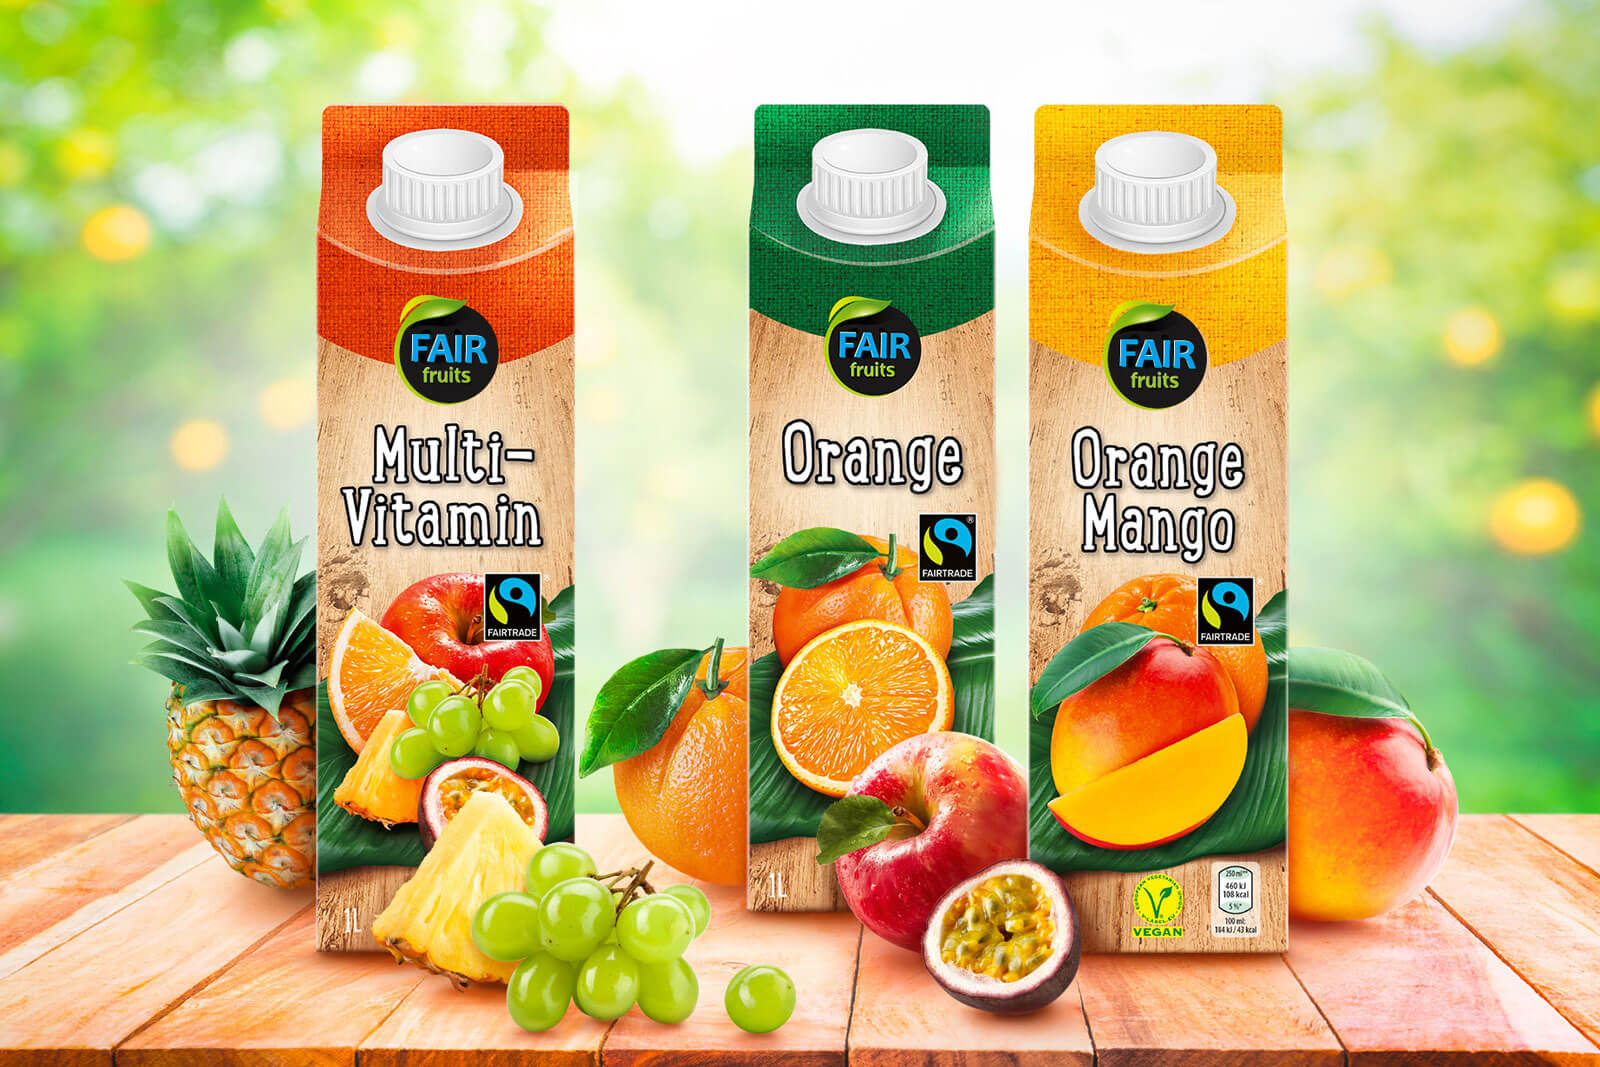 hofer saefte fair fruits imagebild 3 sorten multivitamin orange orange mango design packaging rubicon